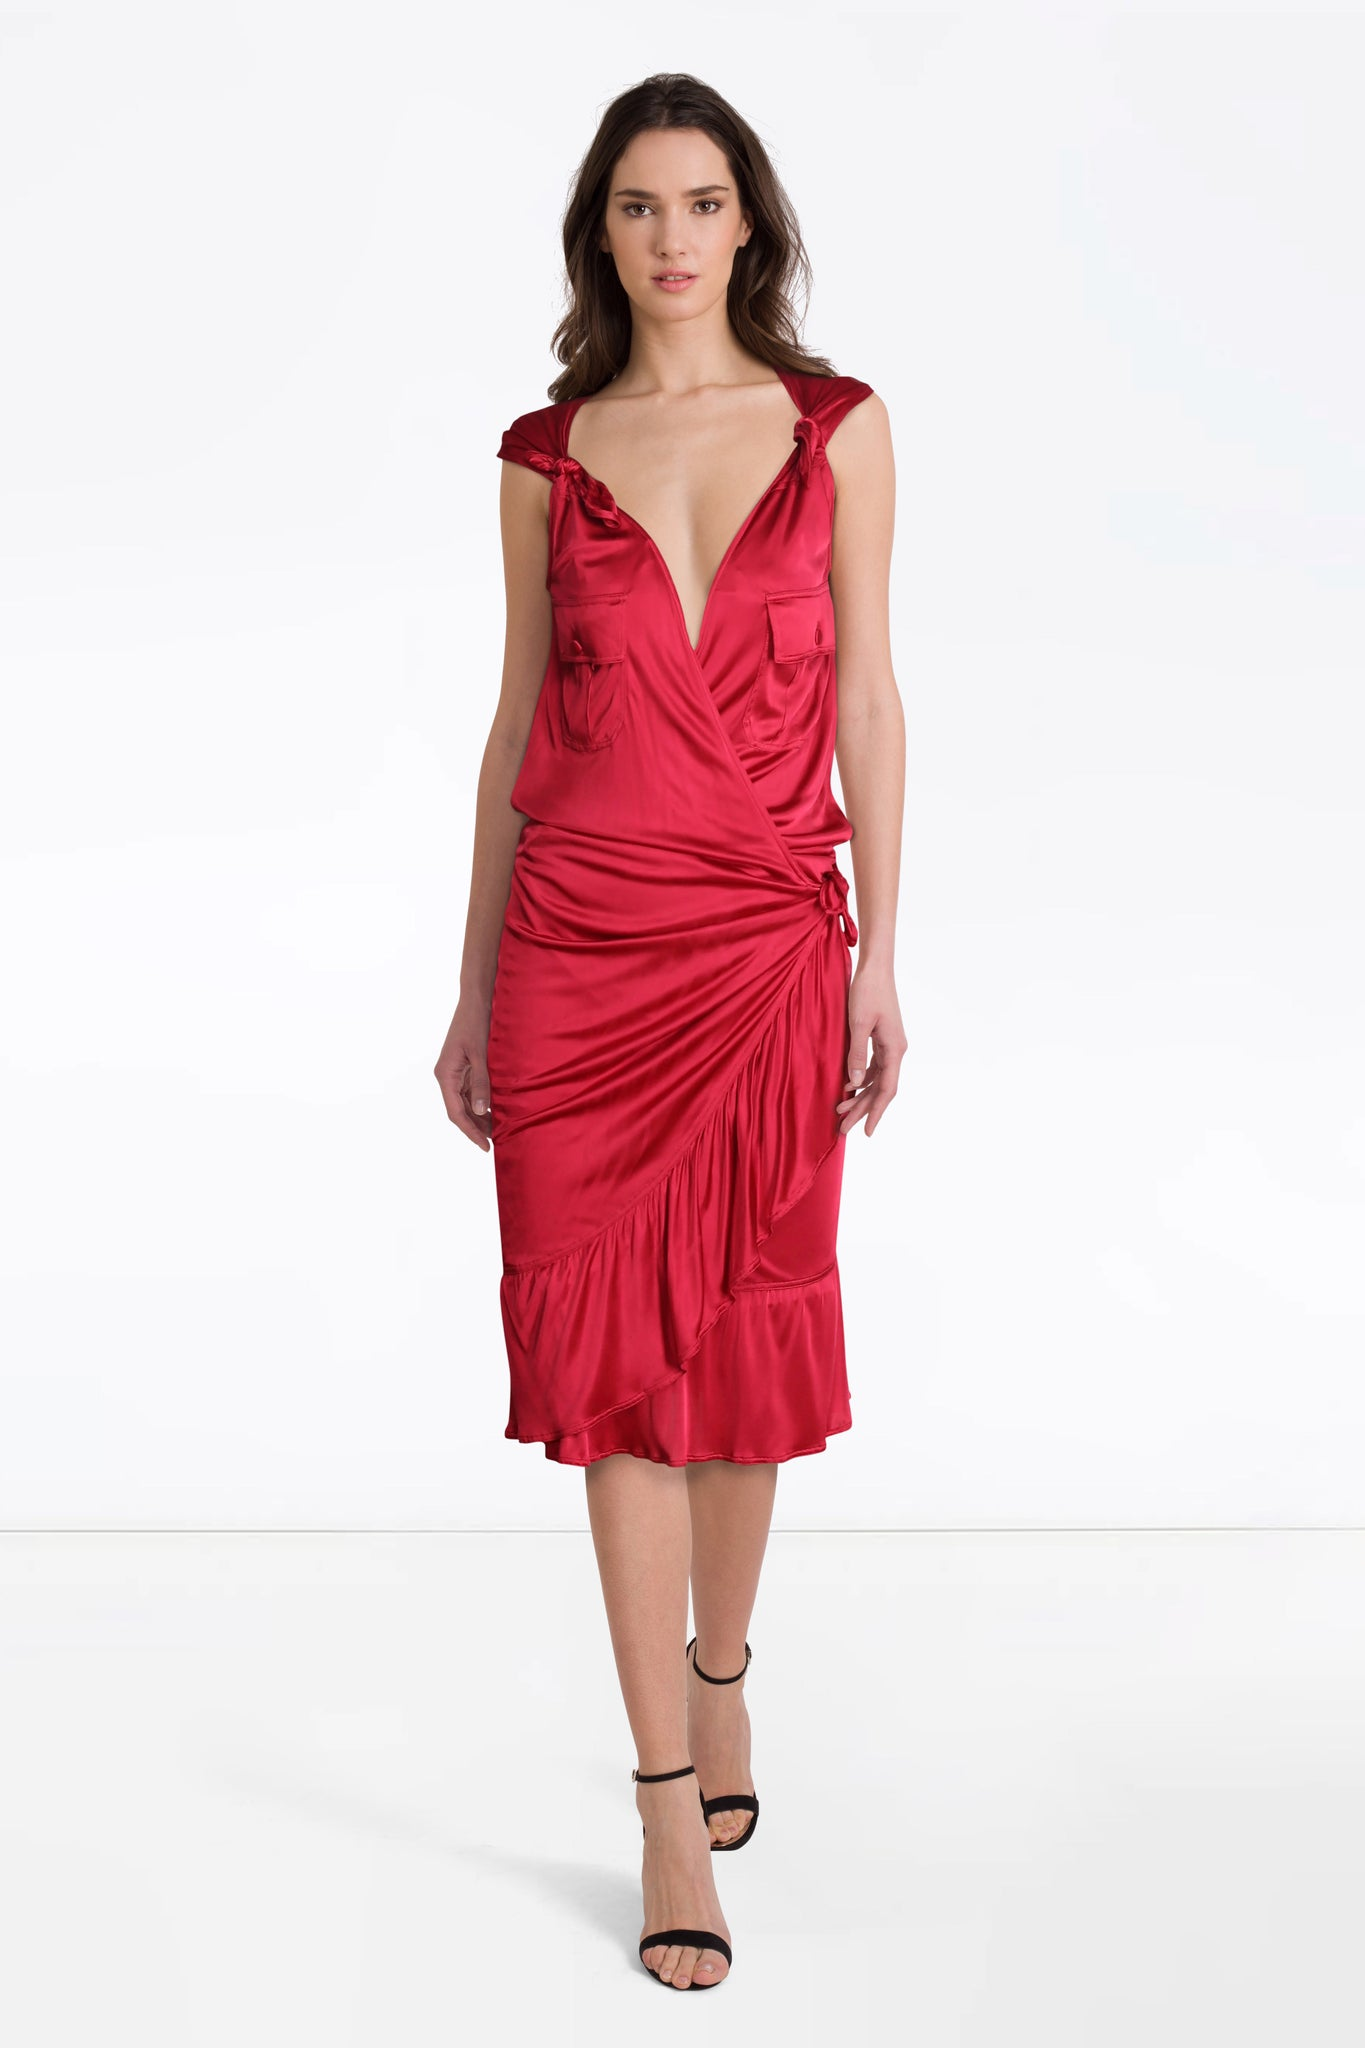 YSL red wrap dress